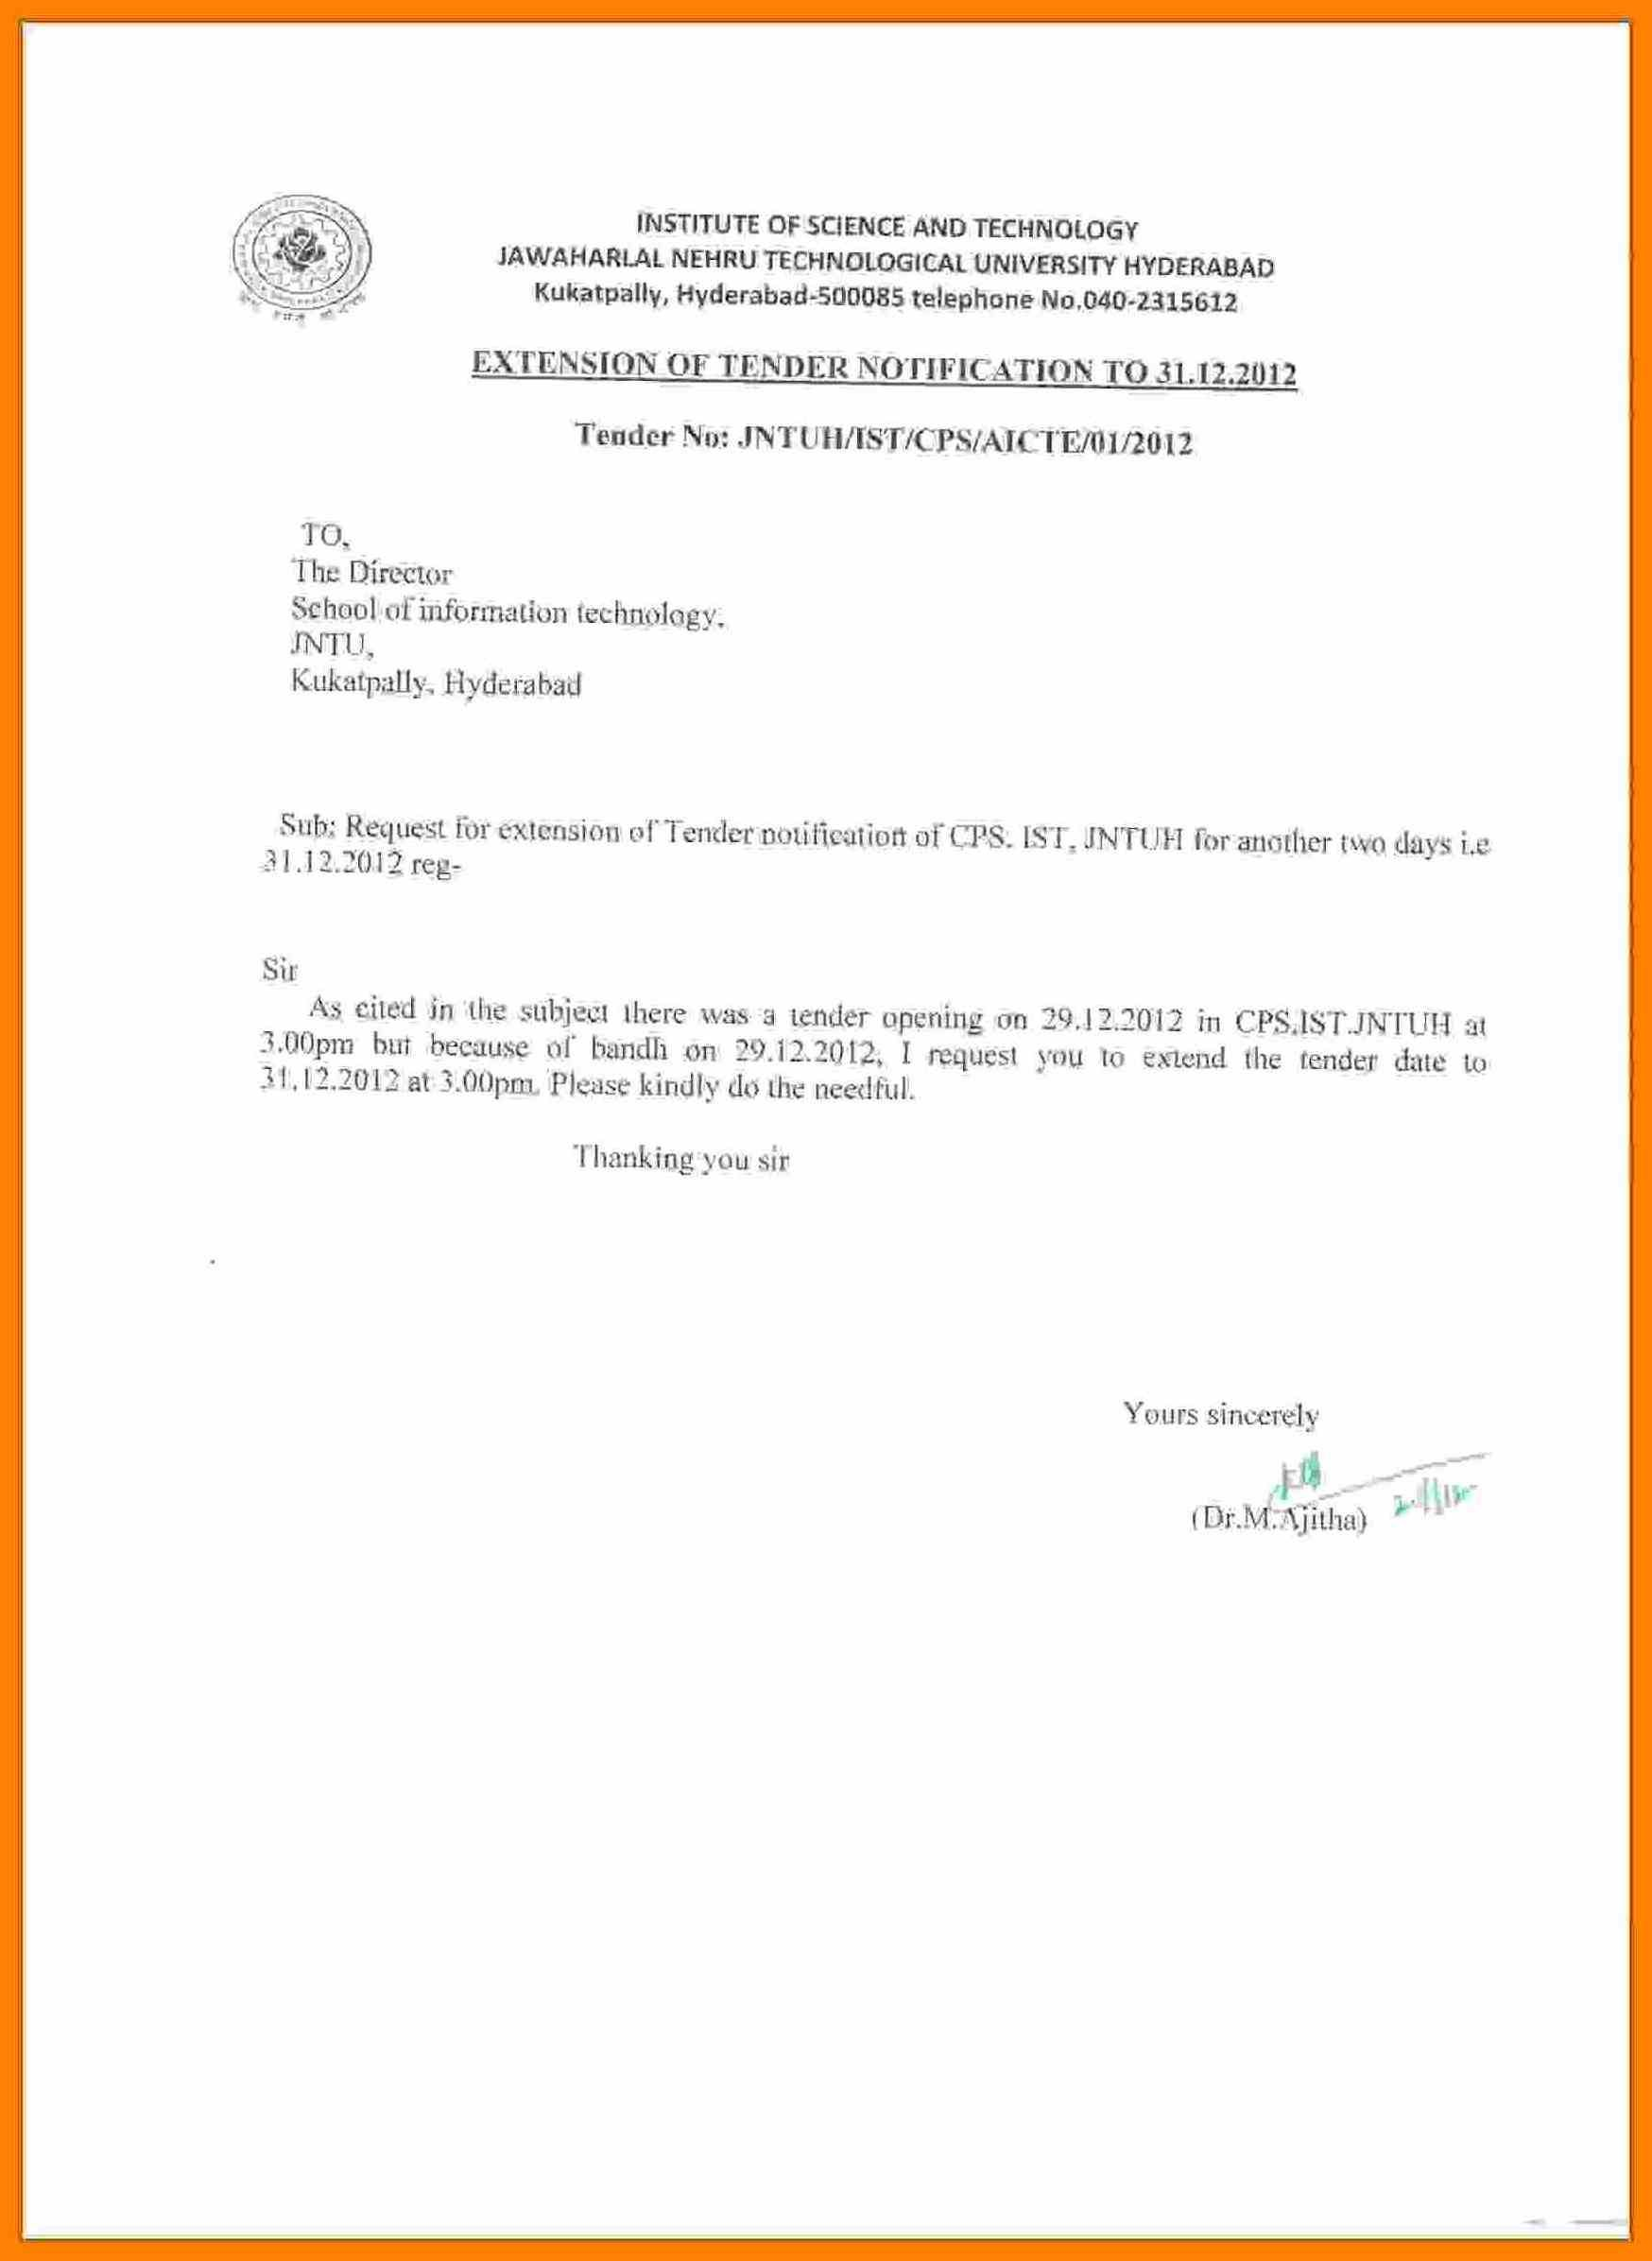 Letter for maternity leave tender application format cover letter for maternity leave tender application format cover certificate extension communitation spiritdancerdesigns Image collections